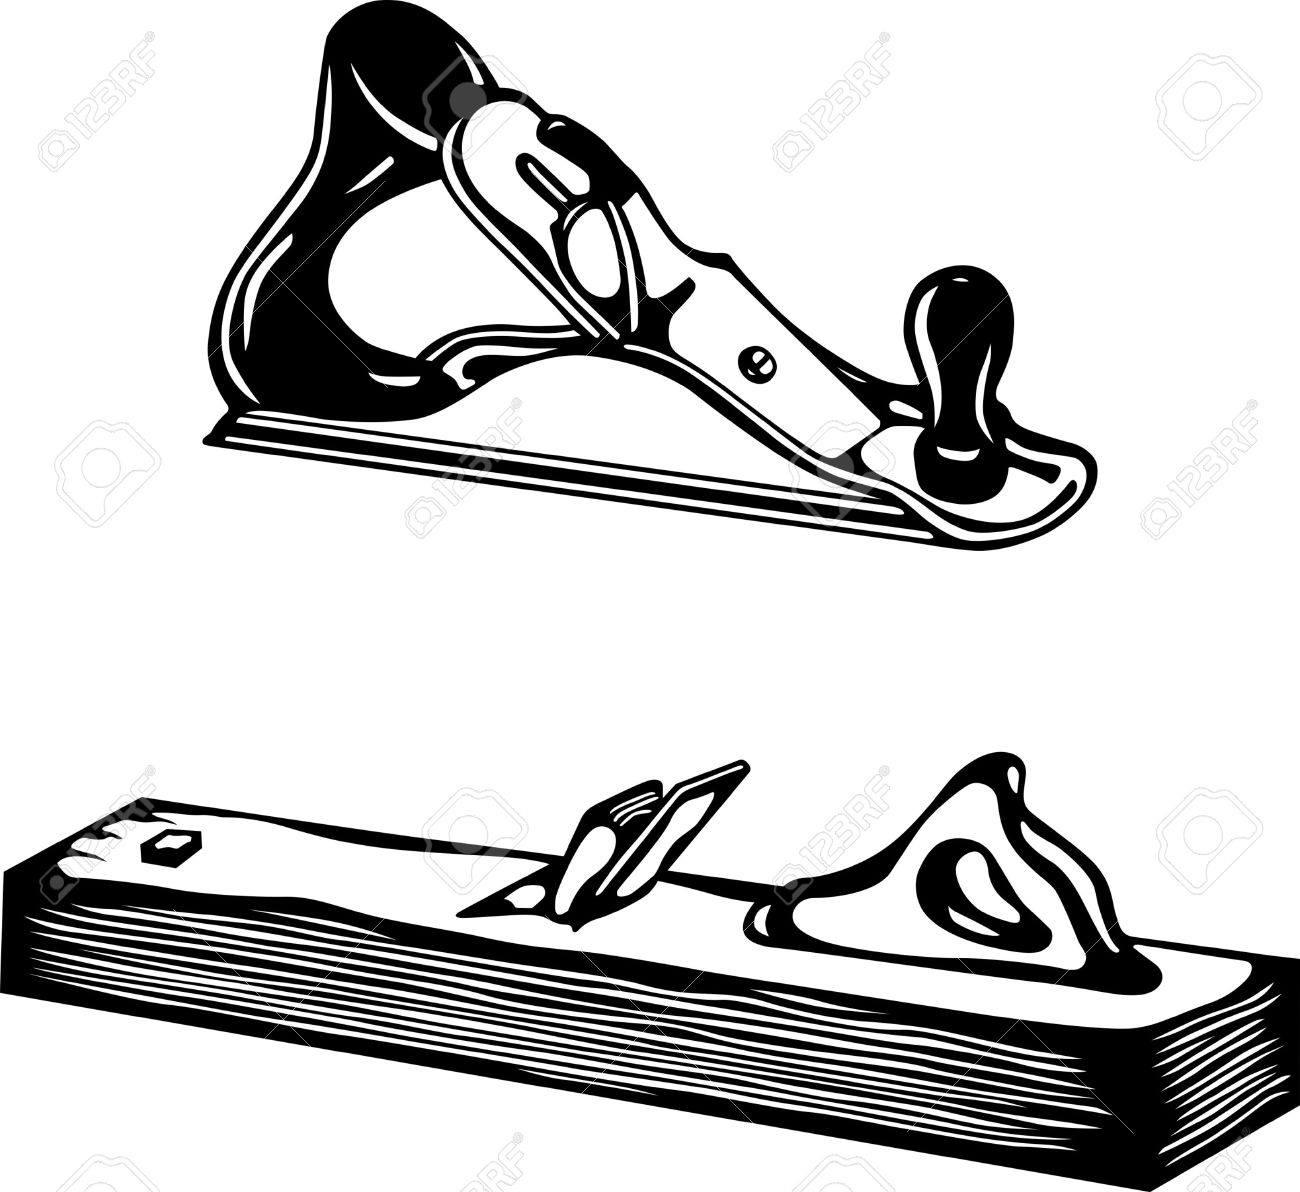 joinery : Two bench planes.